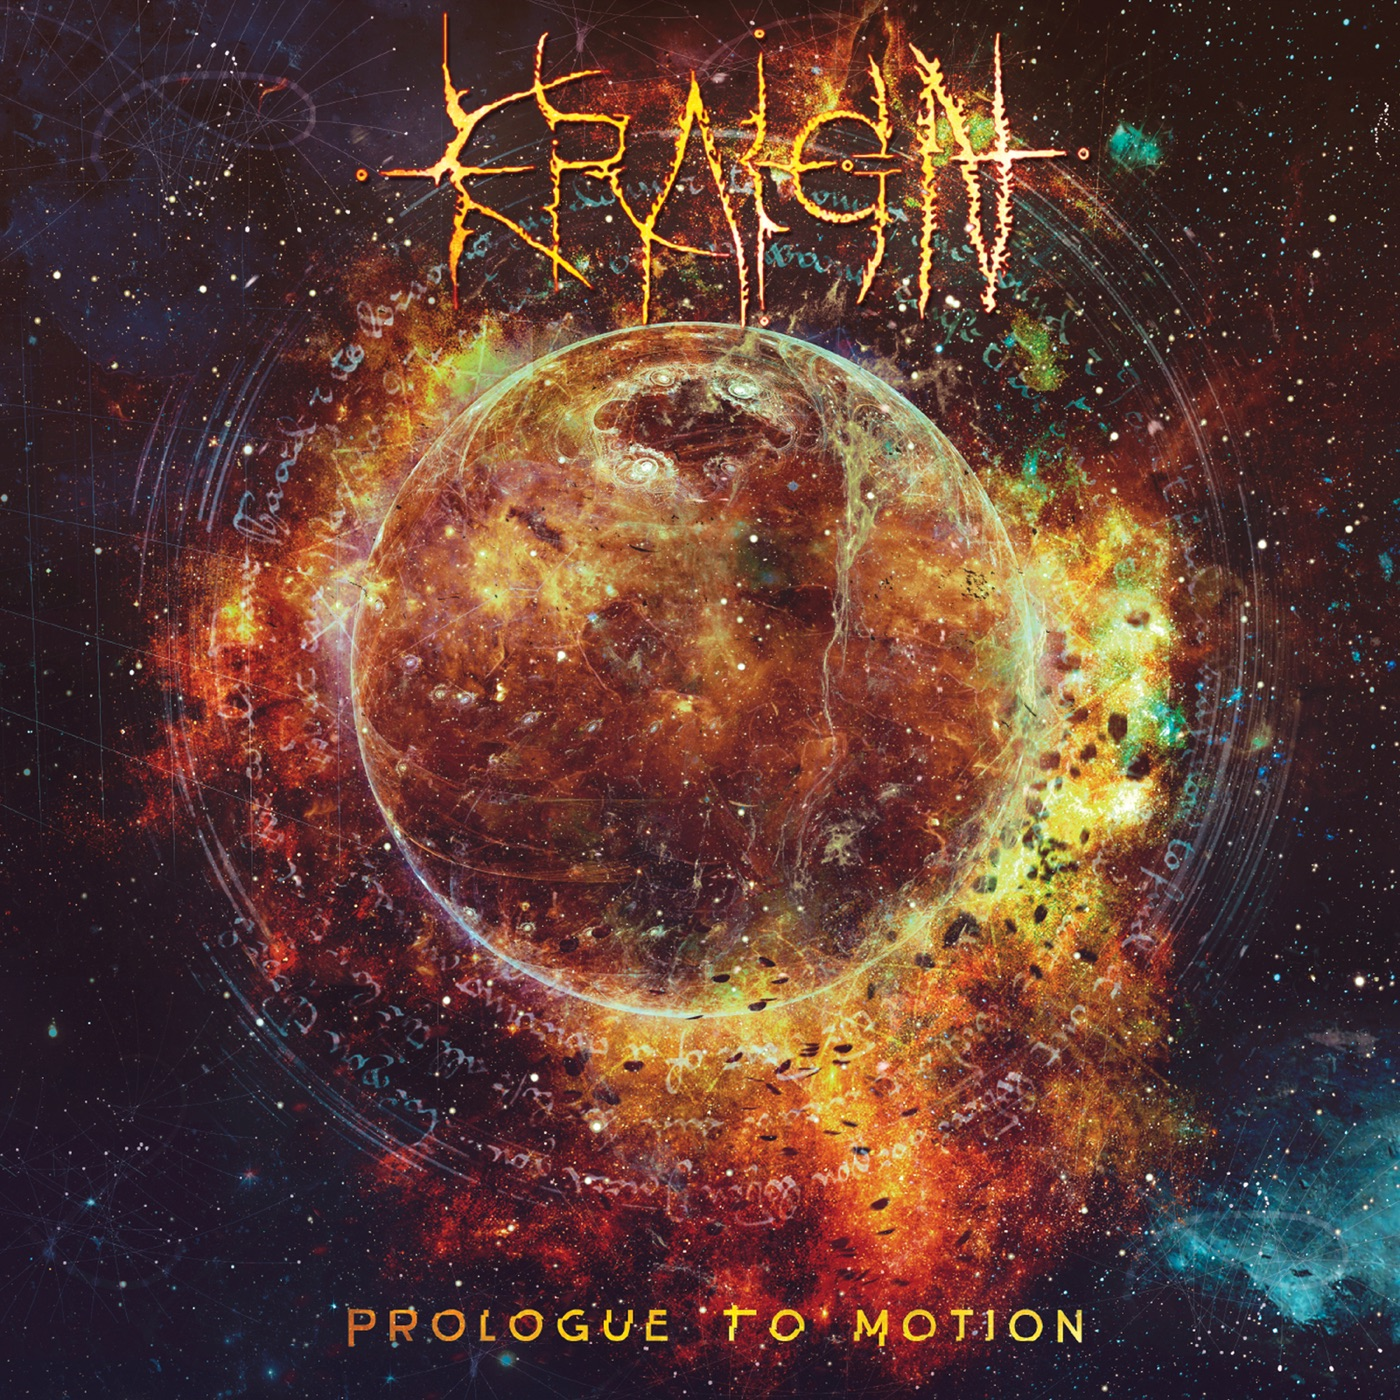 Kraign - Prologue to Motion (2018)